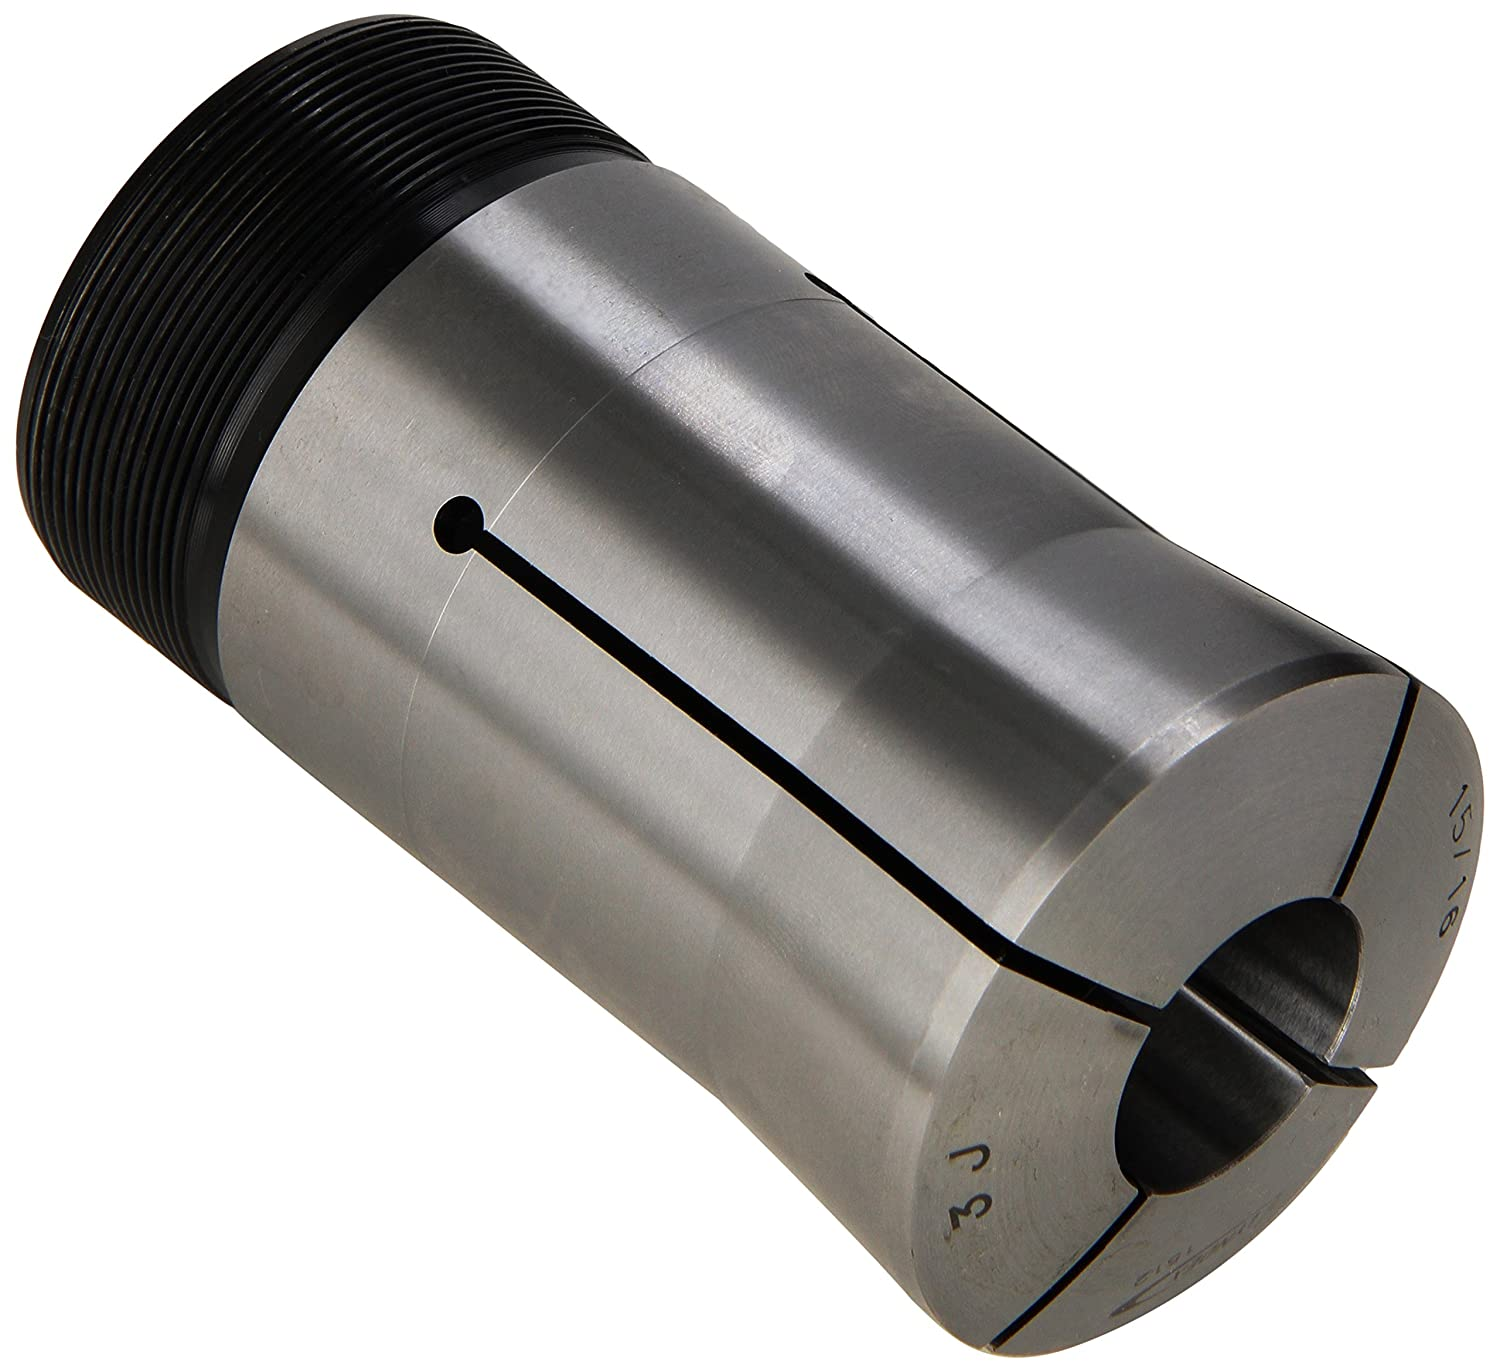 Lyndex 300-061 3J Round Collet 61//64 Opening Size 2.20 Top Diameter 3.75 Length 2 Bottom Diameter